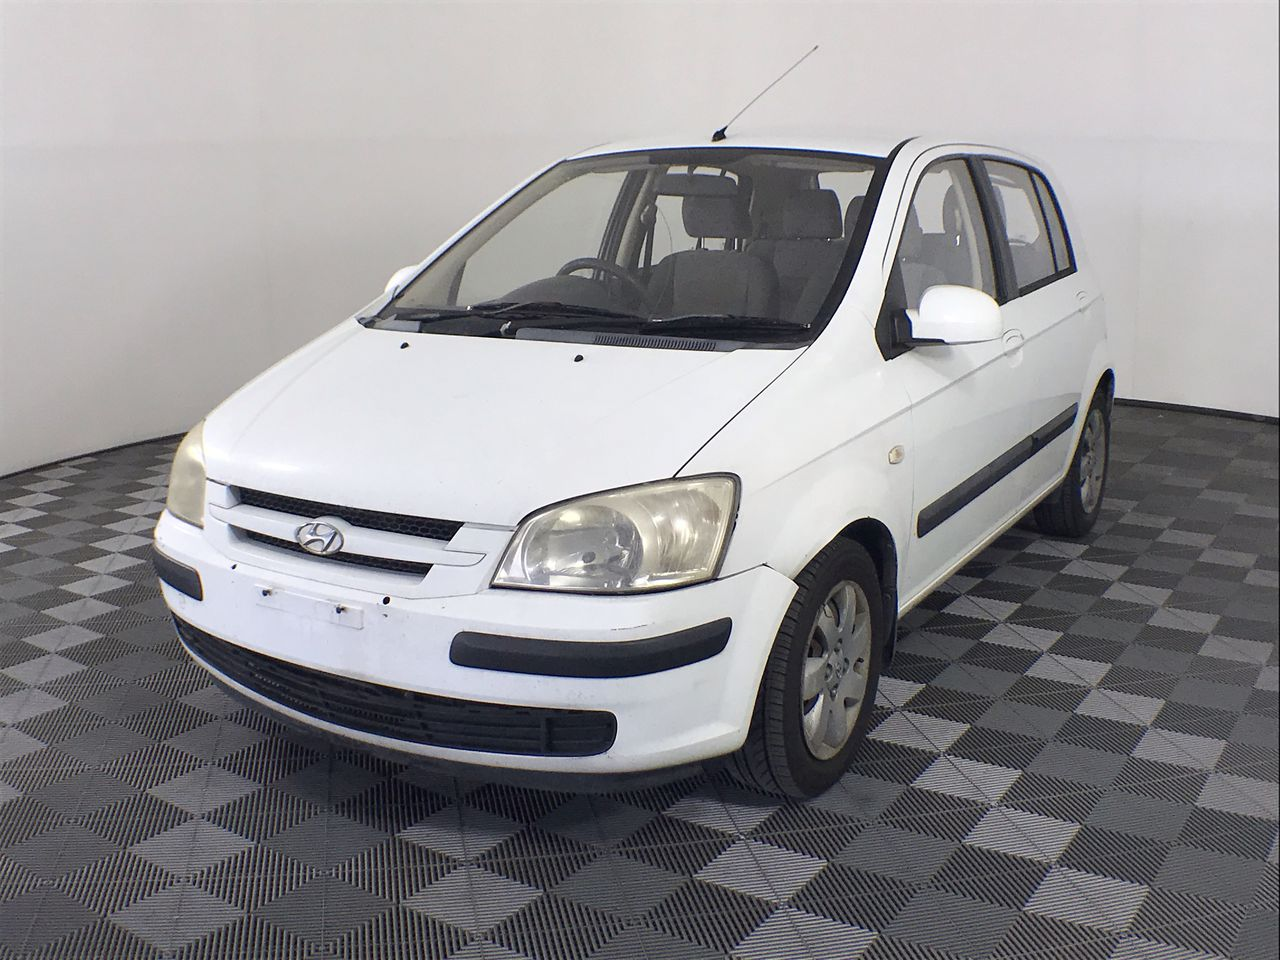 2004 Hyundai Getz GL TB Manual Hatchback